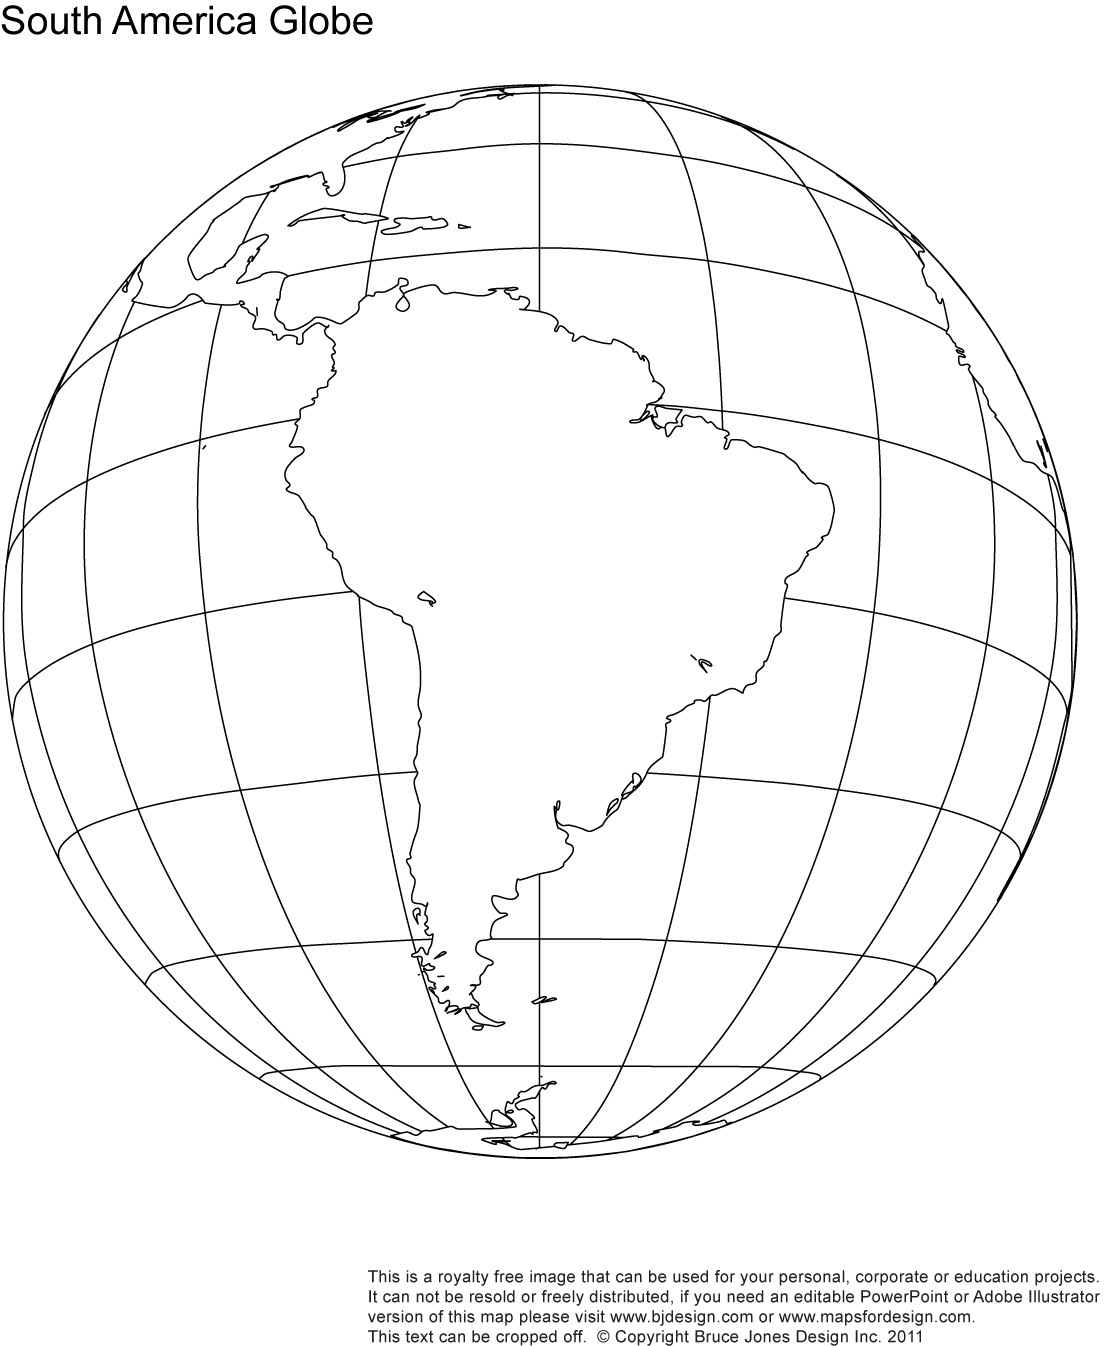 Delightful South America Globe Map, Printable, Blank, Outline, Royalty Free, Jpg Map